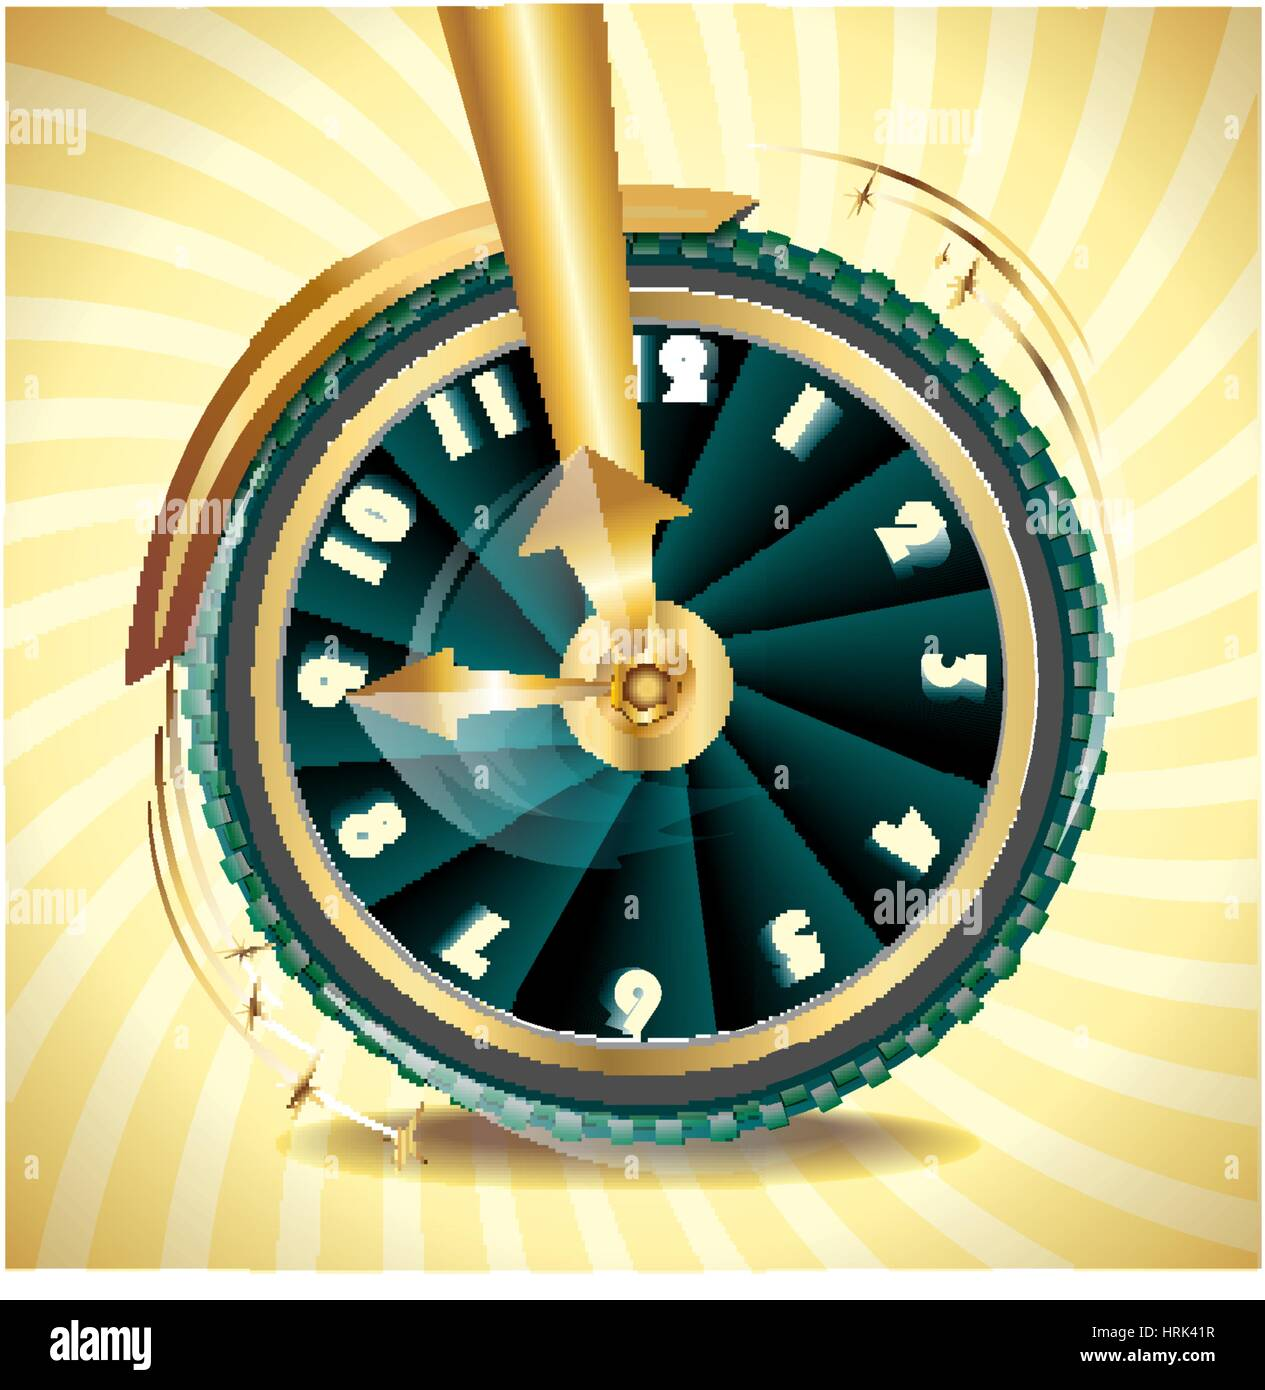 wheel as symbol of transience of time - Stock Vector